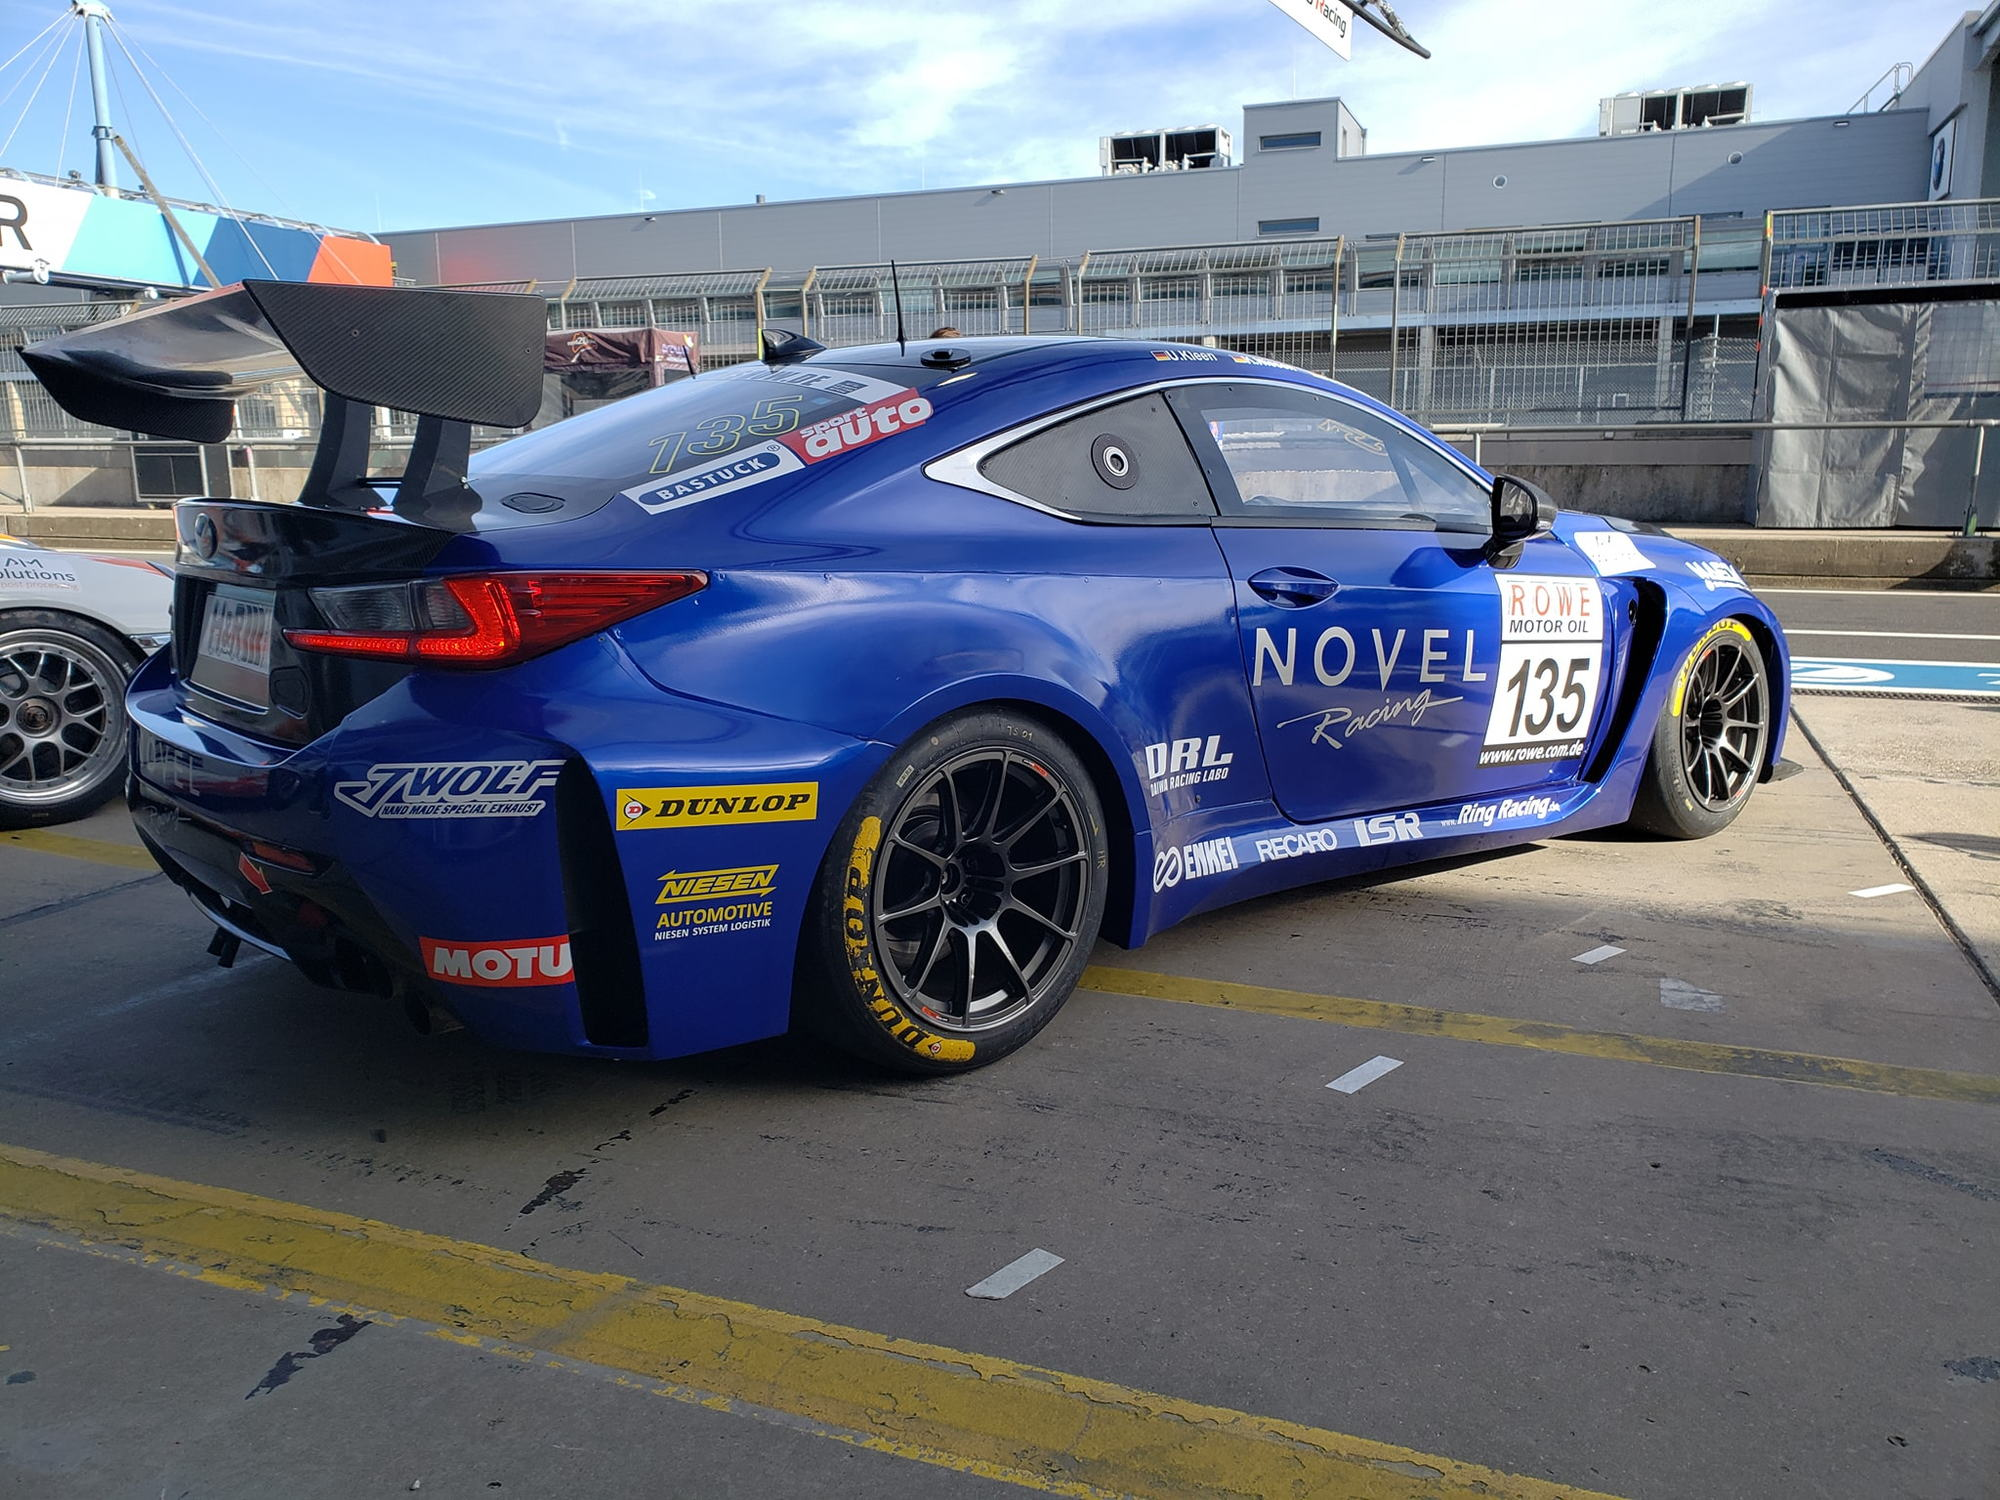 VLN Season Opener at Nurburgring NOVEL RC F pitting with Toyota A90